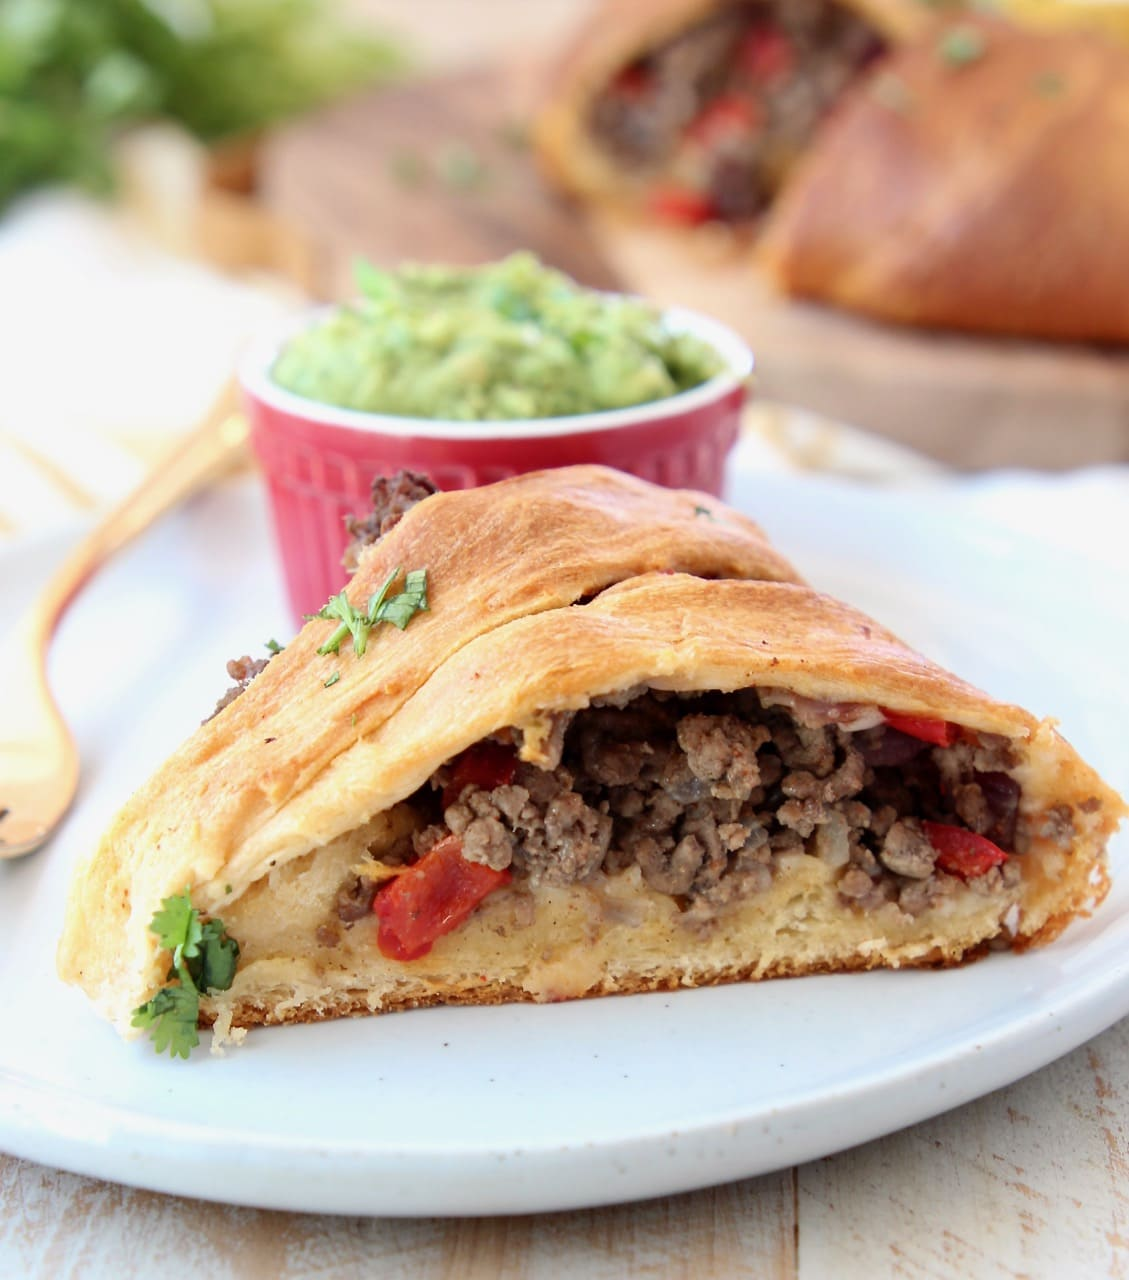 Slice of taco ring with crescent rolls filled with ground beef, with side ramekin of guacamole and gold fork